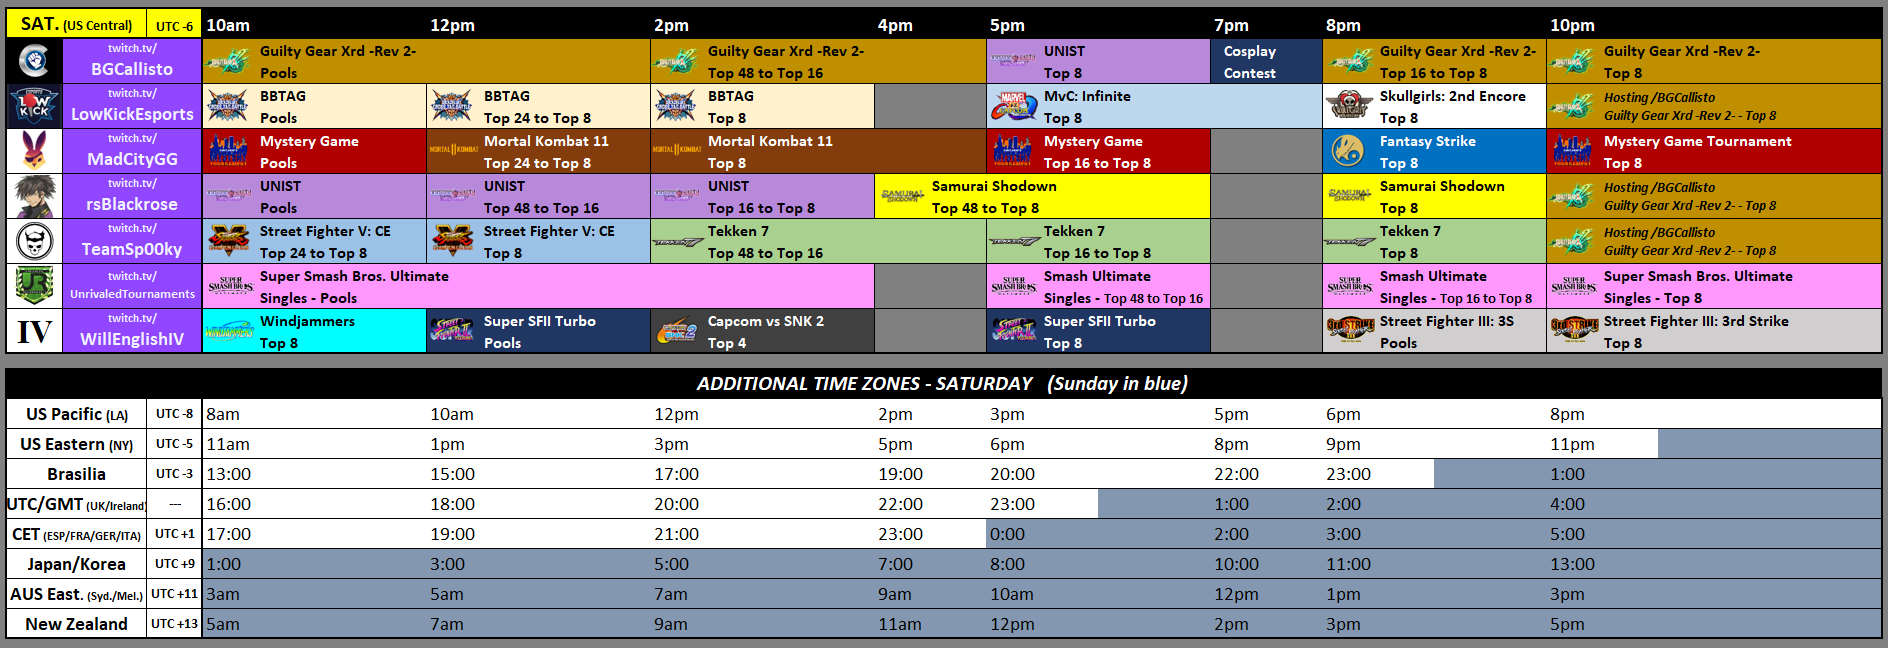 Frosty Faustings XII Event Schedule 2 out of 2 image gallery